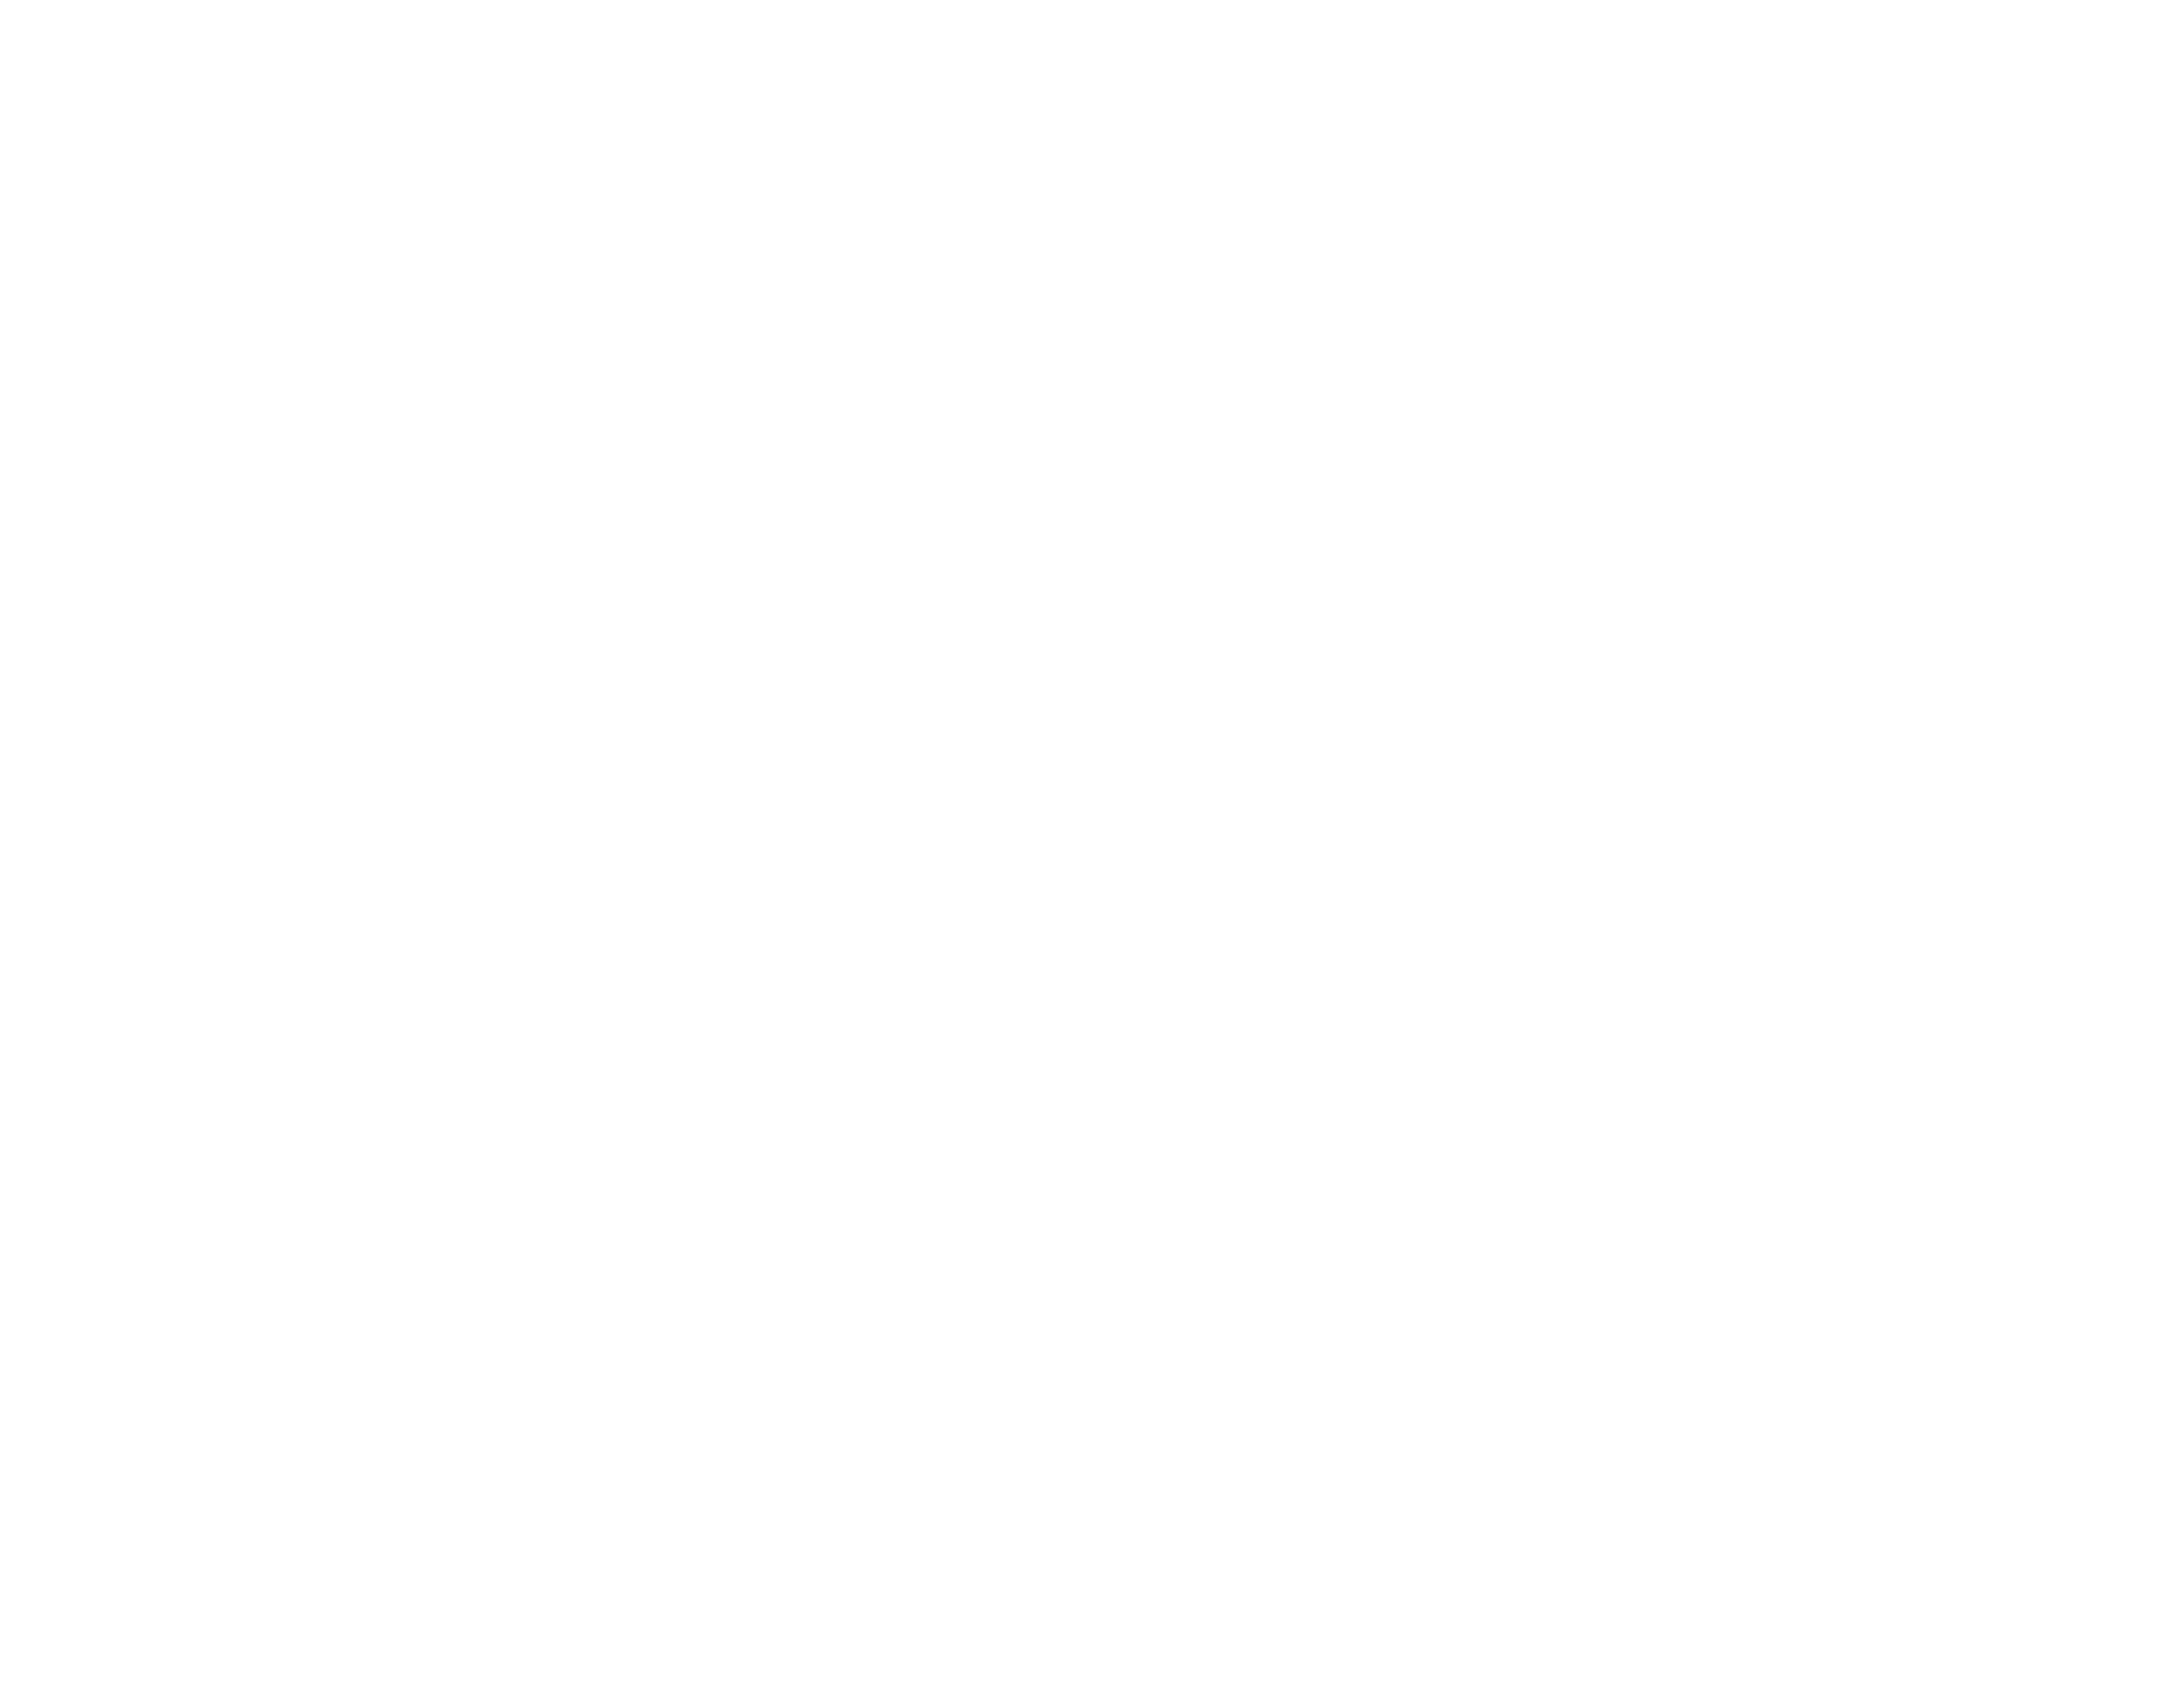 River Discover